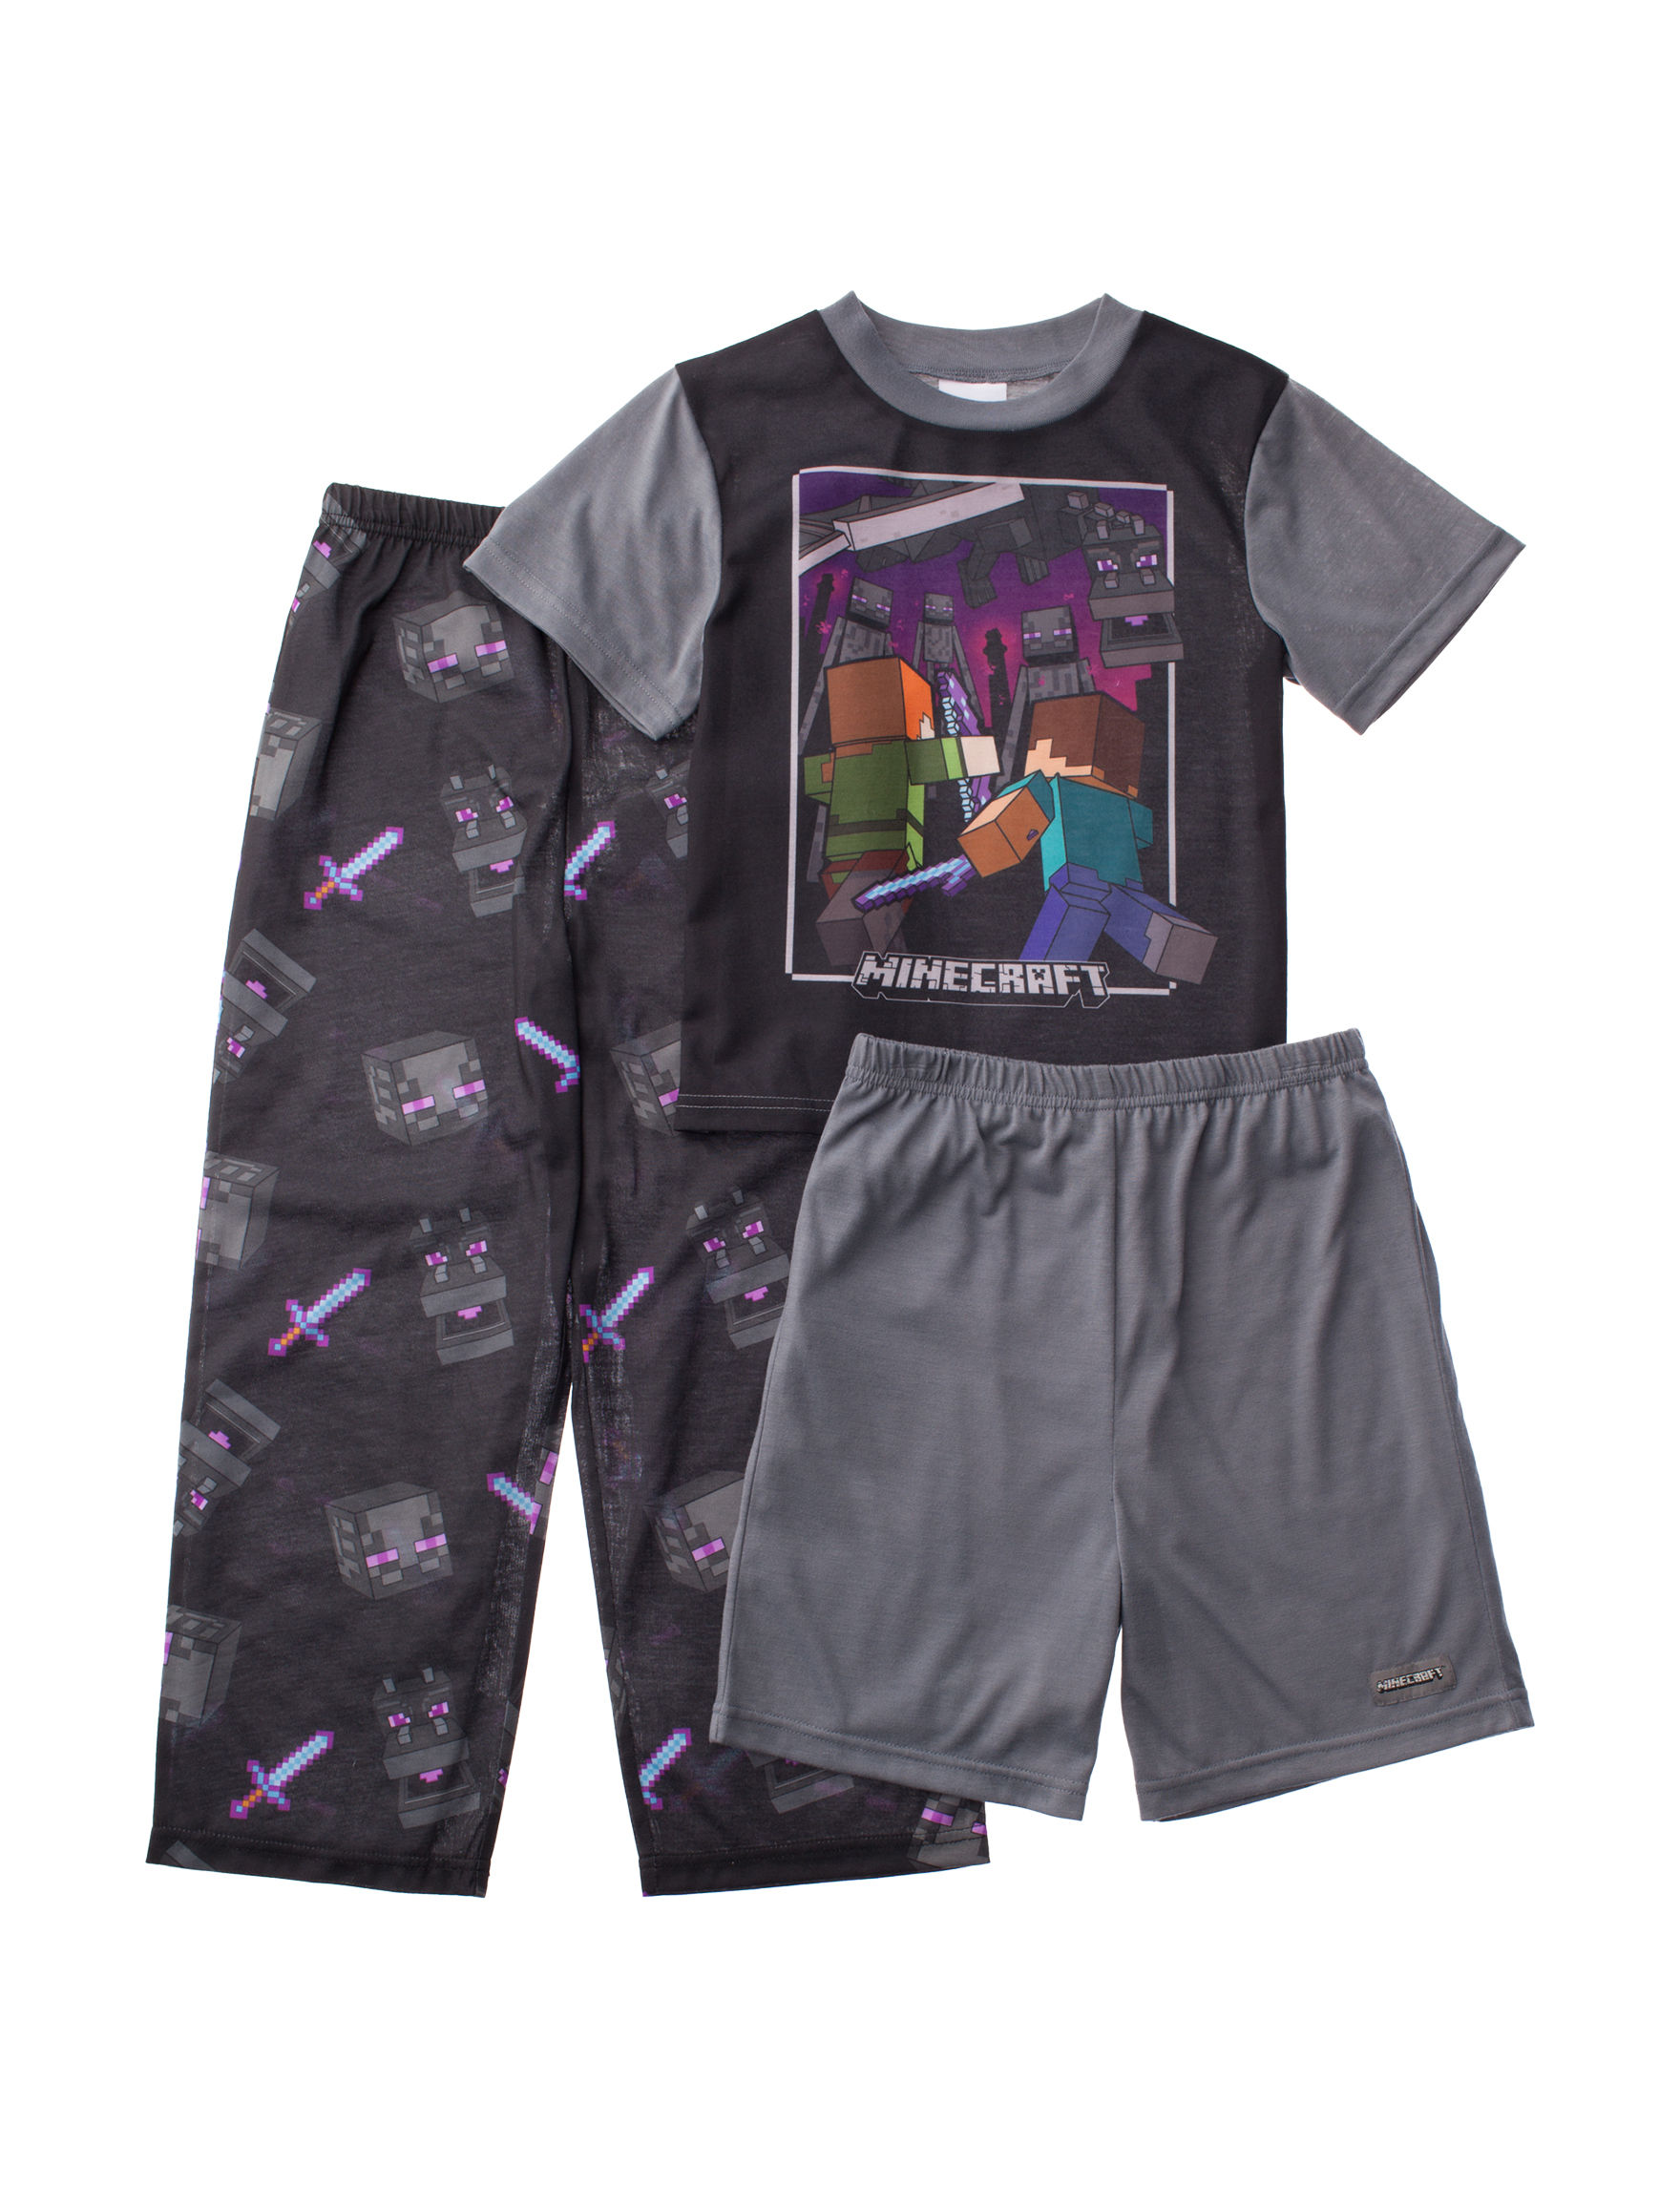 Licensed Black / Grey Pajama Sets